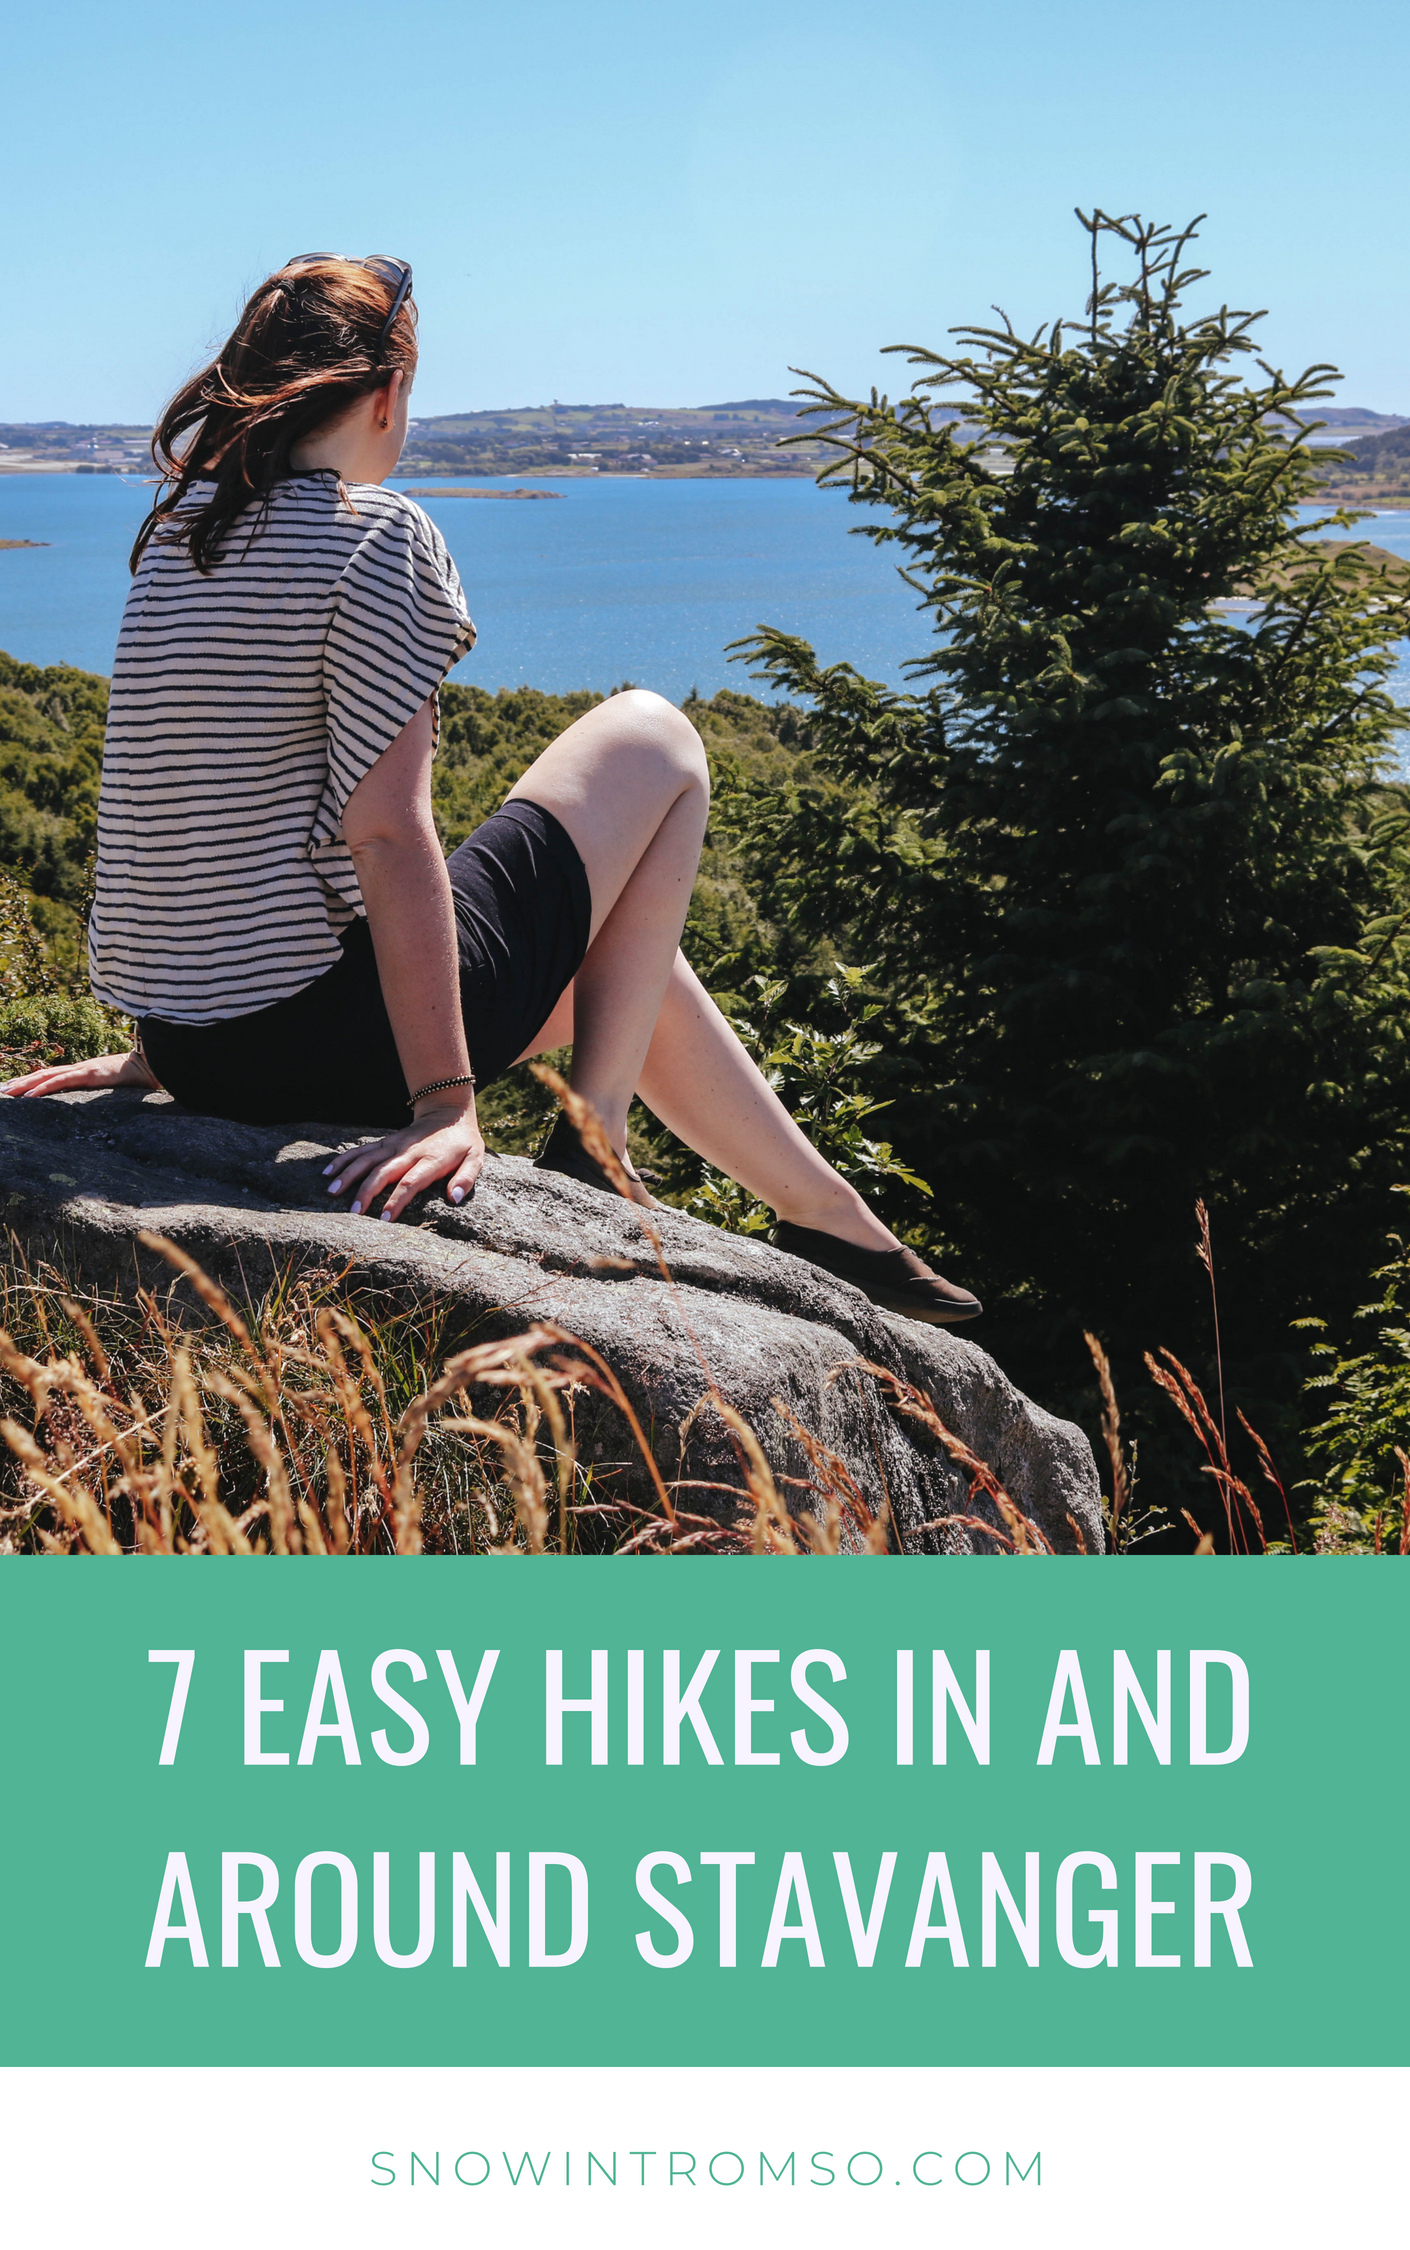 Headed to Stavanger? Here are 7 stunning and easy hikes for you to try!